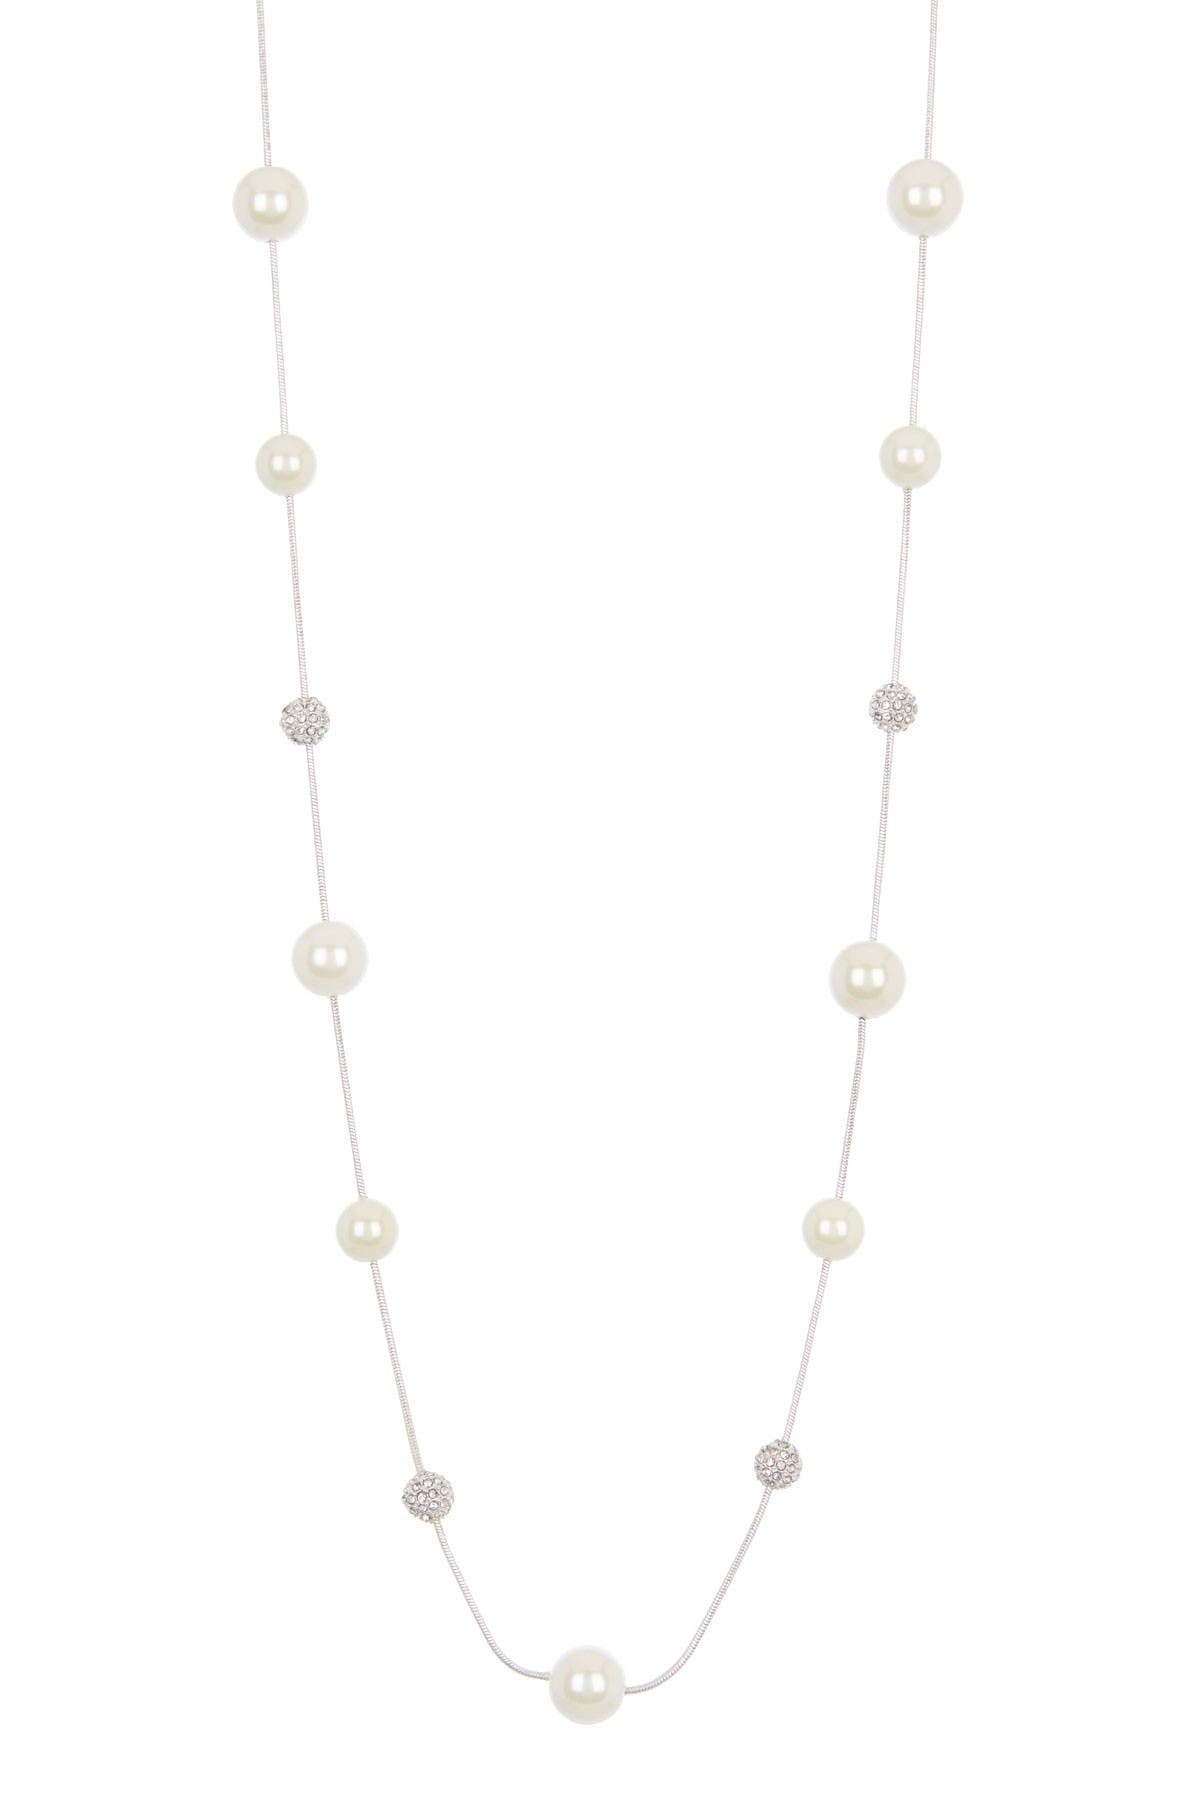 Image of Lauren Ralph Lauren Synthetic Pearl & Pave CZ Ball Station Necklace